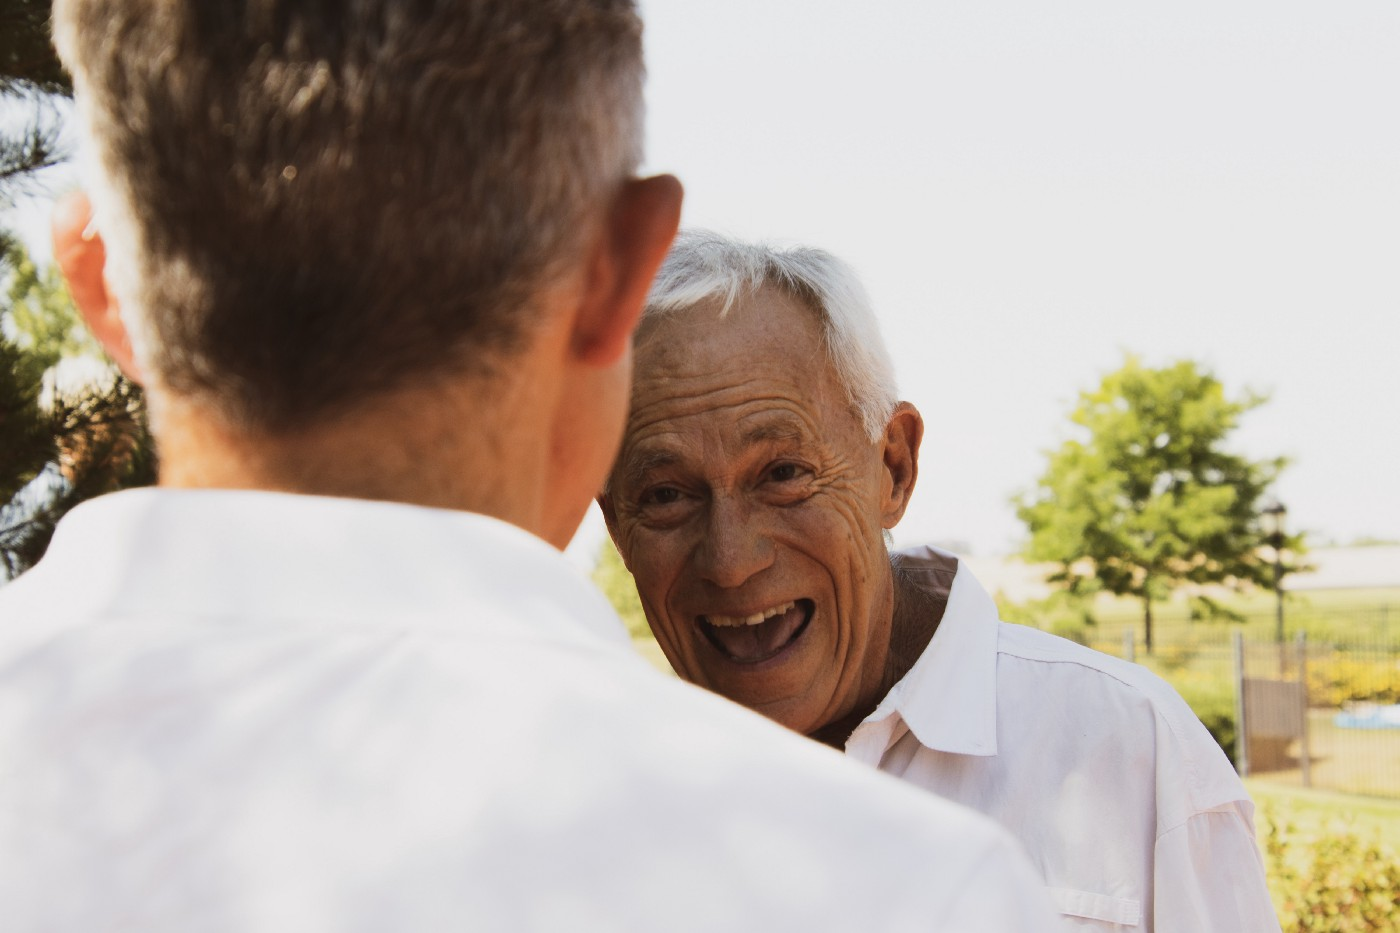 Younger man in foreground conversing with laughing older man